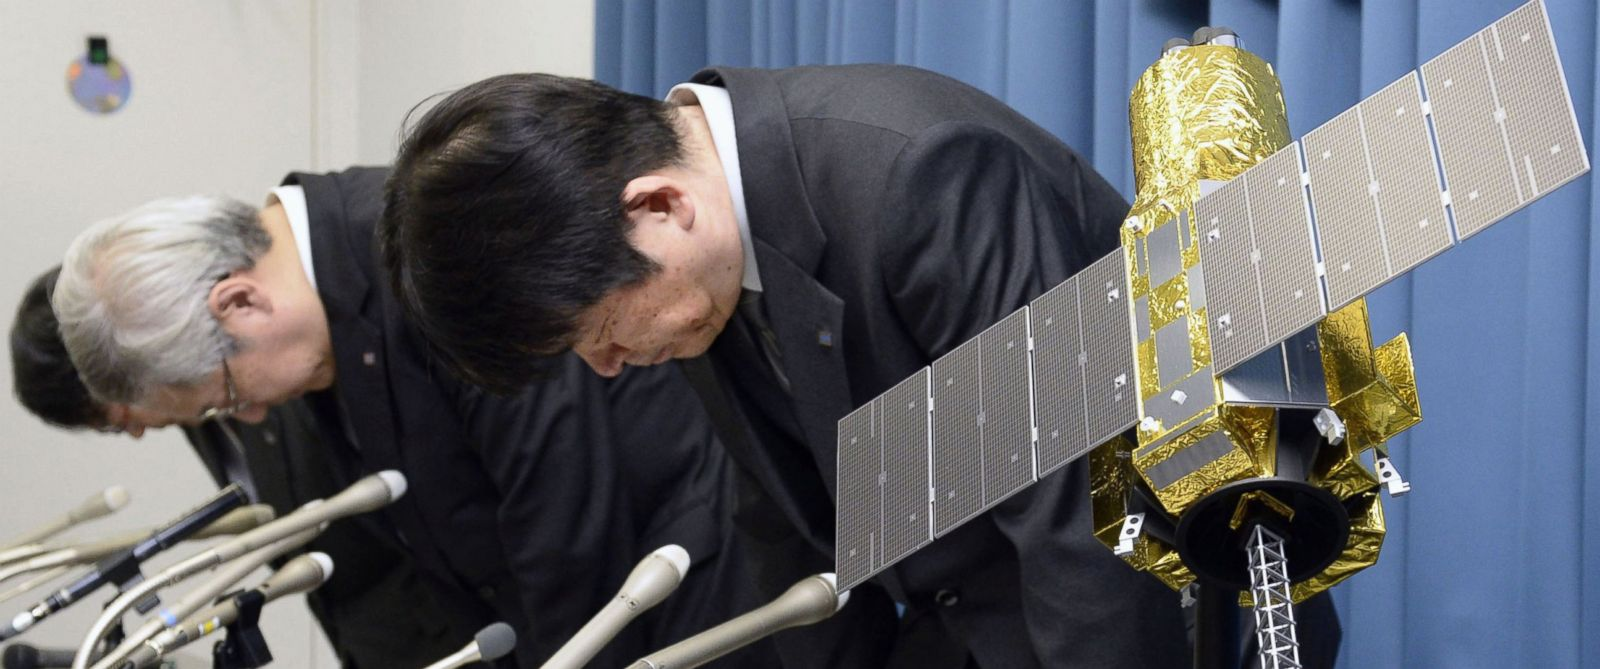 """PHOTO: Officials of the Japan Aerospace Exploration Agency bow beside the model of an X-ray astronomy satellite called """"Hitomi"""" in the agency in Tokyo, Japan, April 28, 2016."""